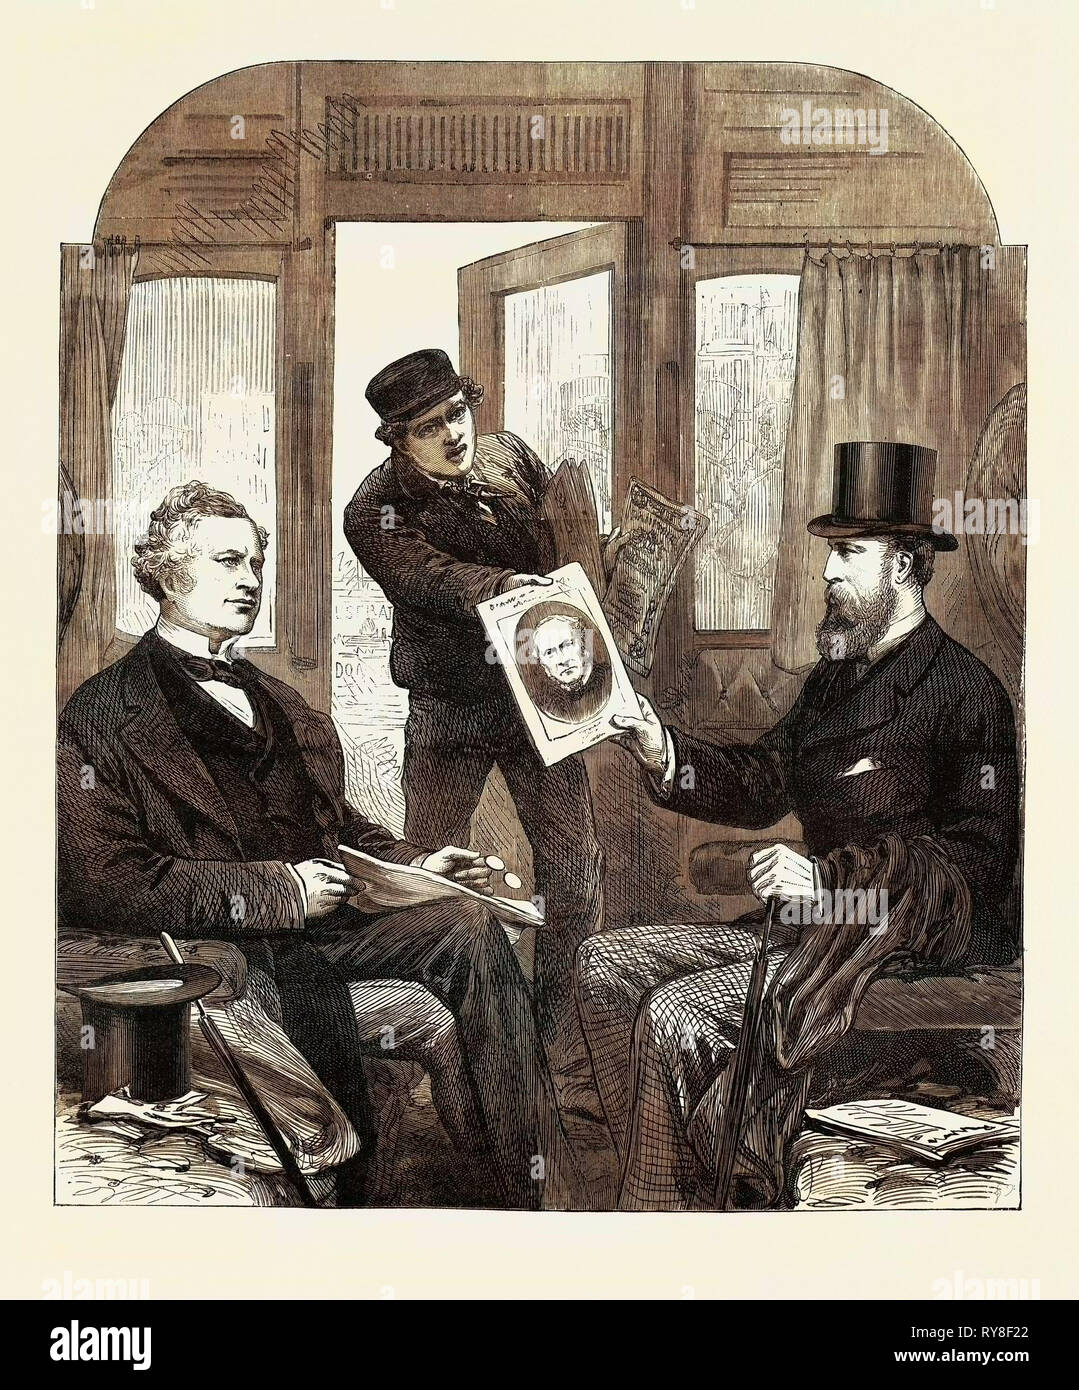 The Ministerial Crisis: A Sketch at the Great Western Railway Station Paddington Friday April 23 1880 - Stock Image